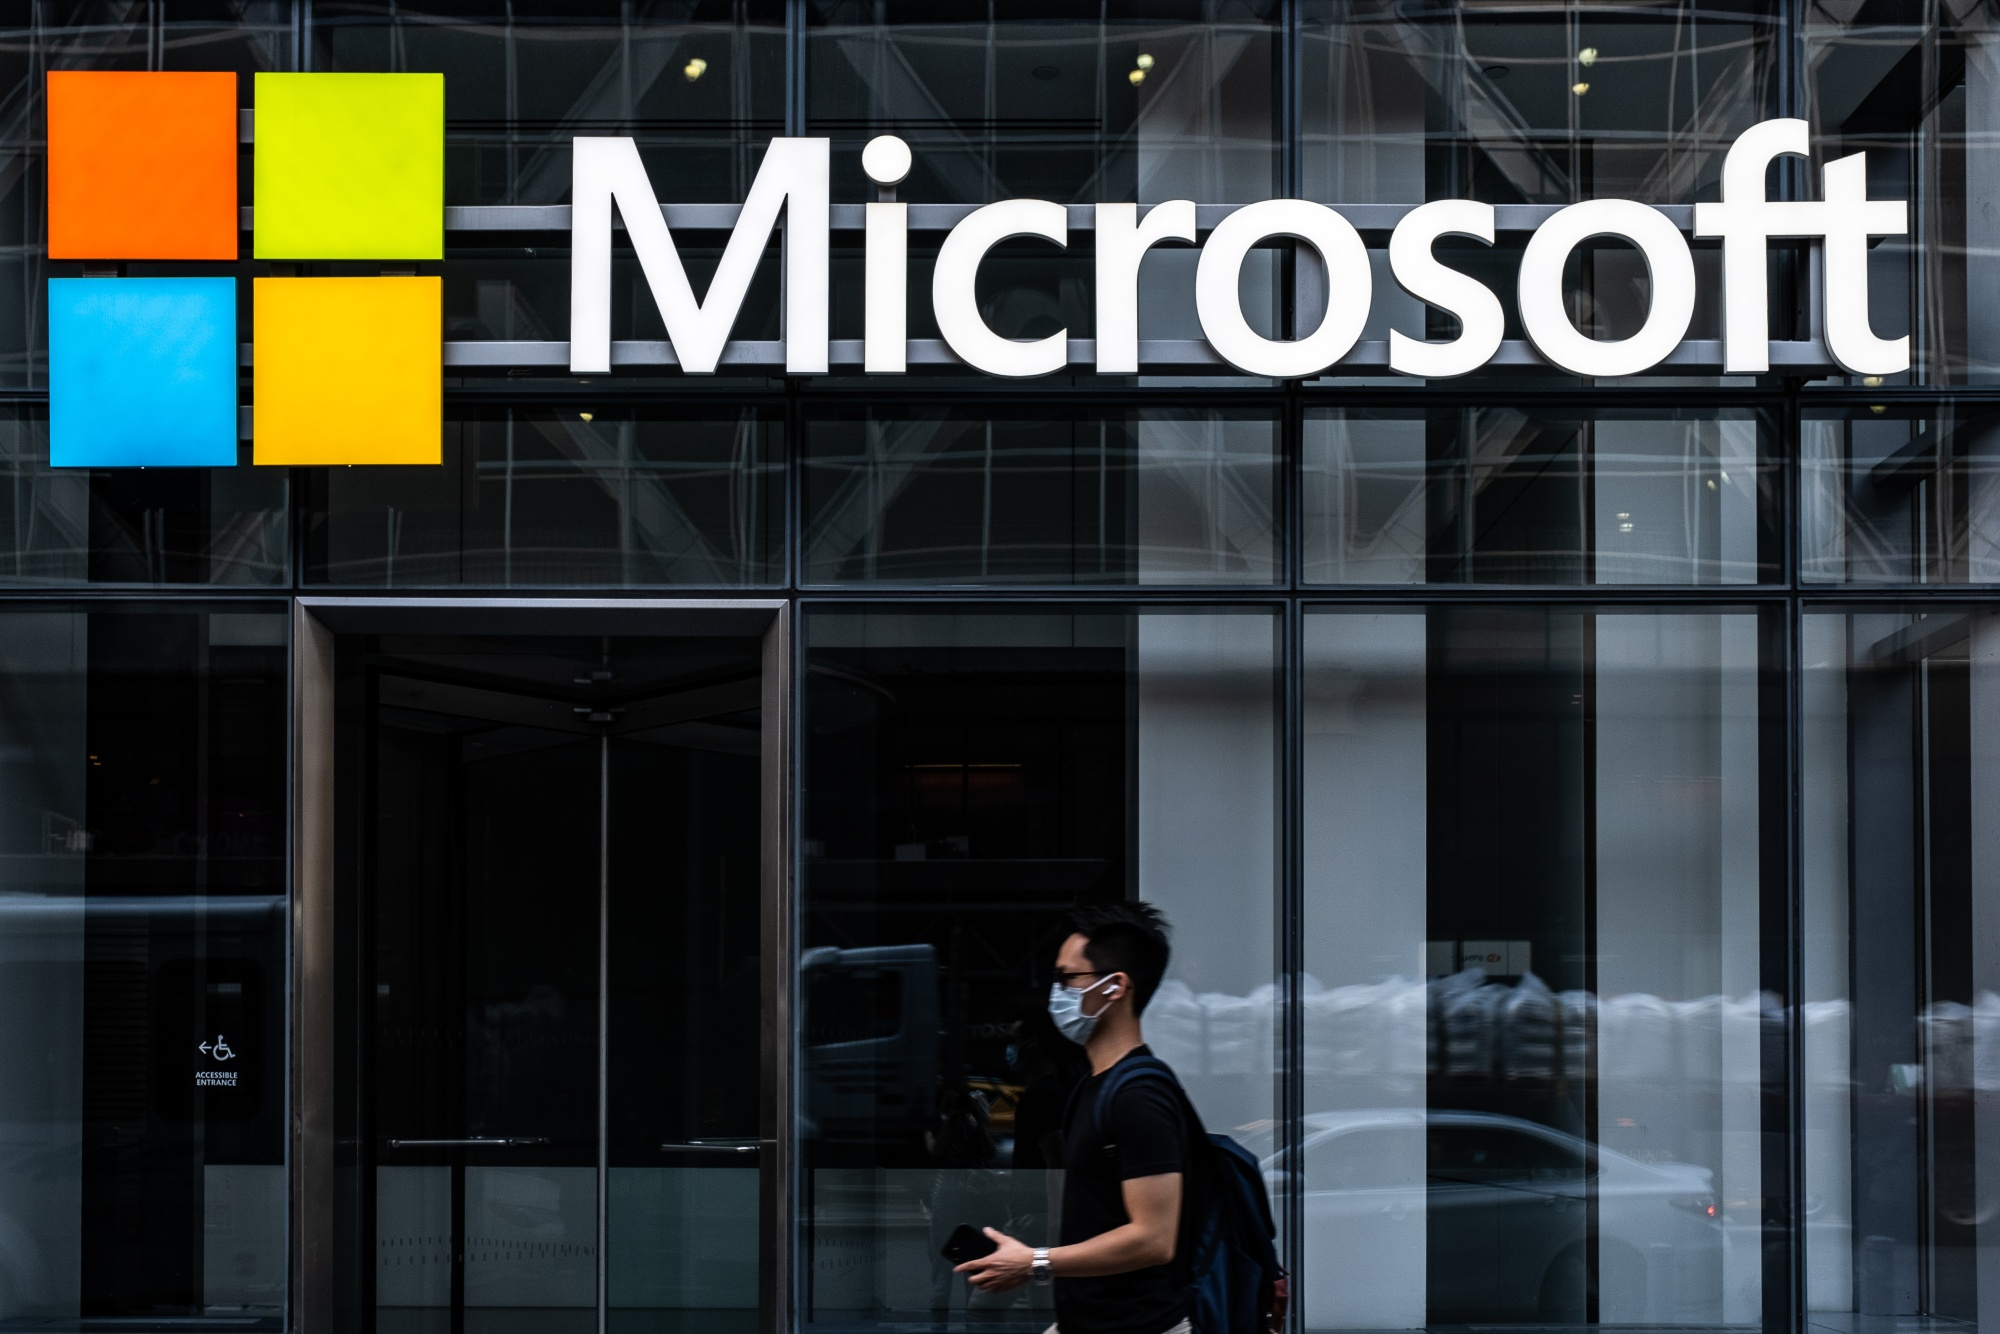 A pedestrian wearing a protective mask walks past a Microsoft Technology Centers in New York, U.S., on Wednesday, July 22, 2020.